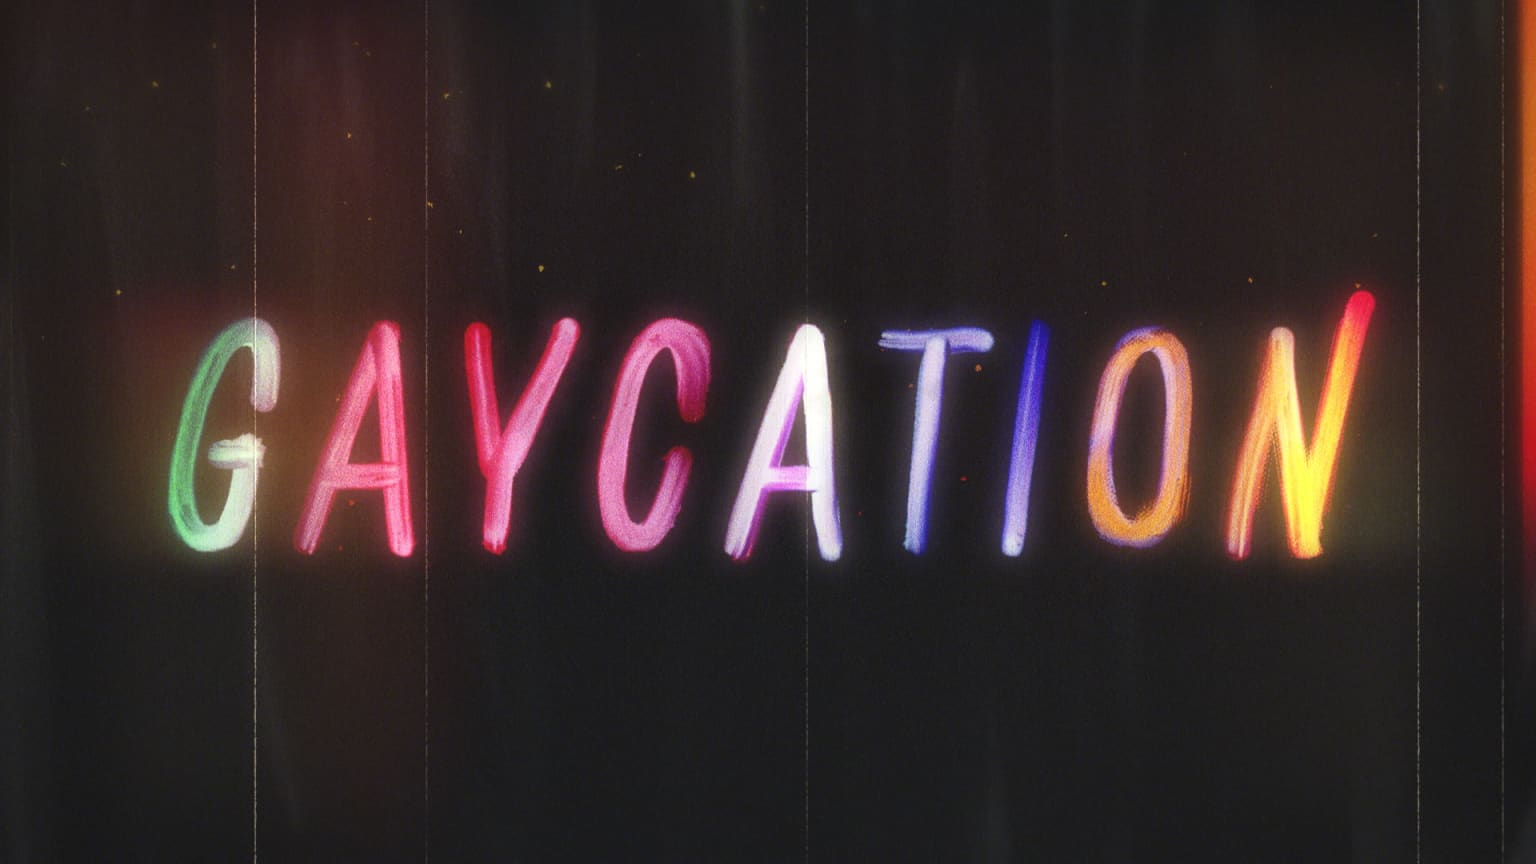 Viceland's Gaycation: Title Sequence